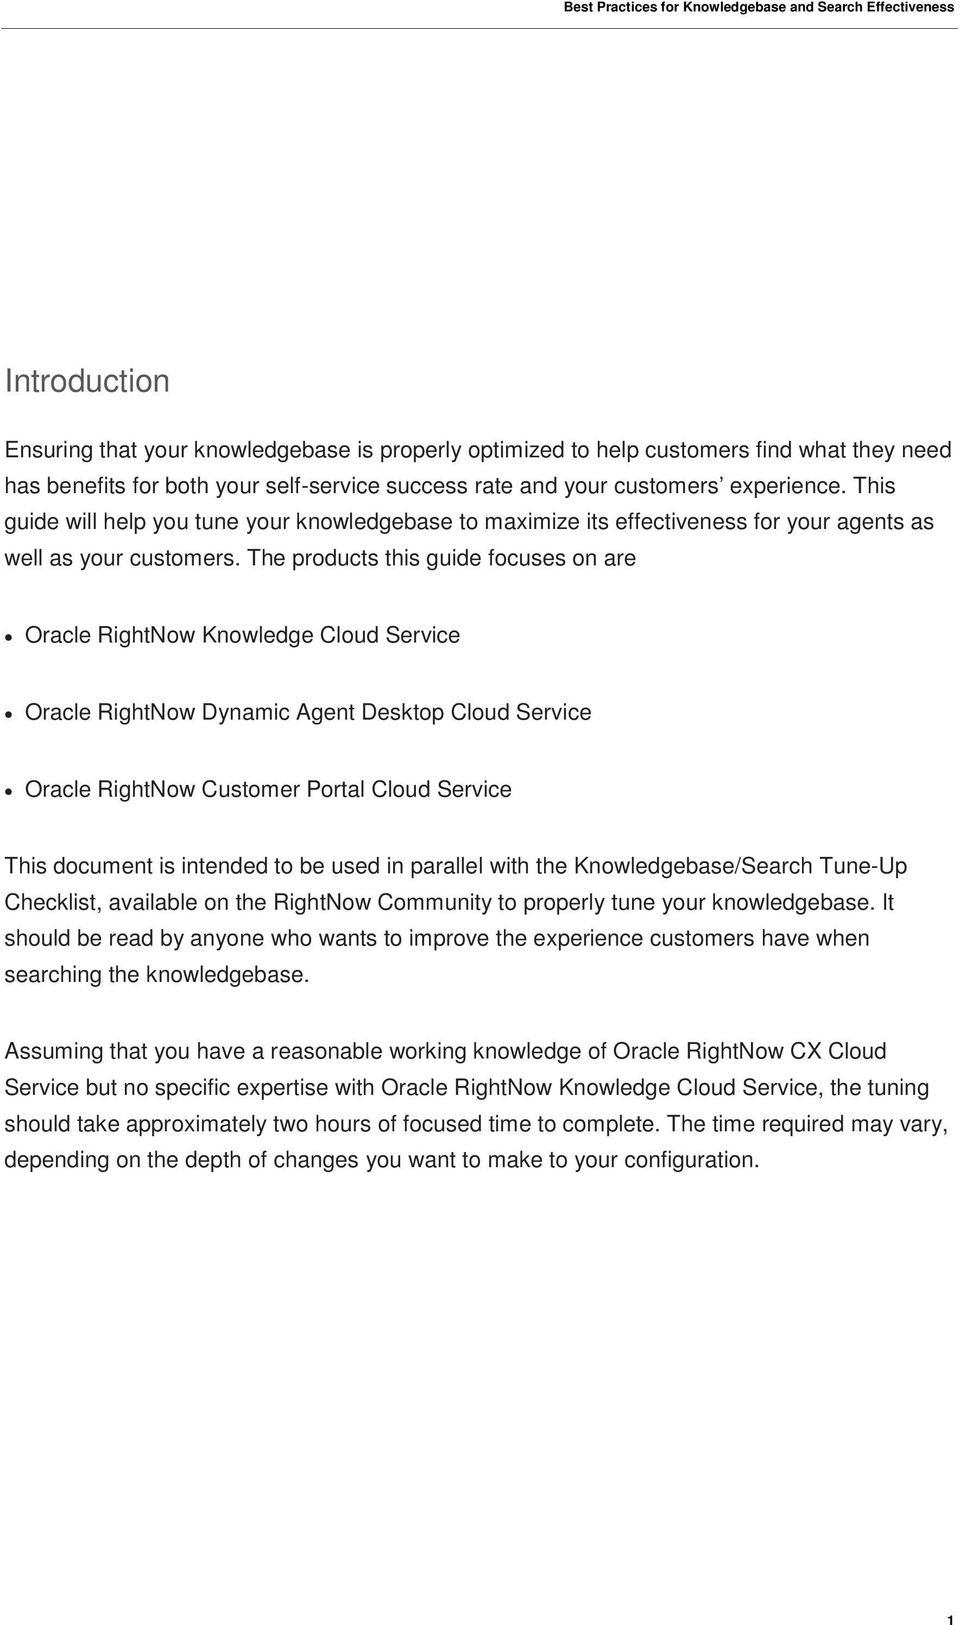 The products this guide focuses on are Oracle RightNow Knowledge Cloud Service Oracle RightNow Dynamic Agent Desktop Cloud Service Oracle RightNow Customer Portal Cloud Service This document is